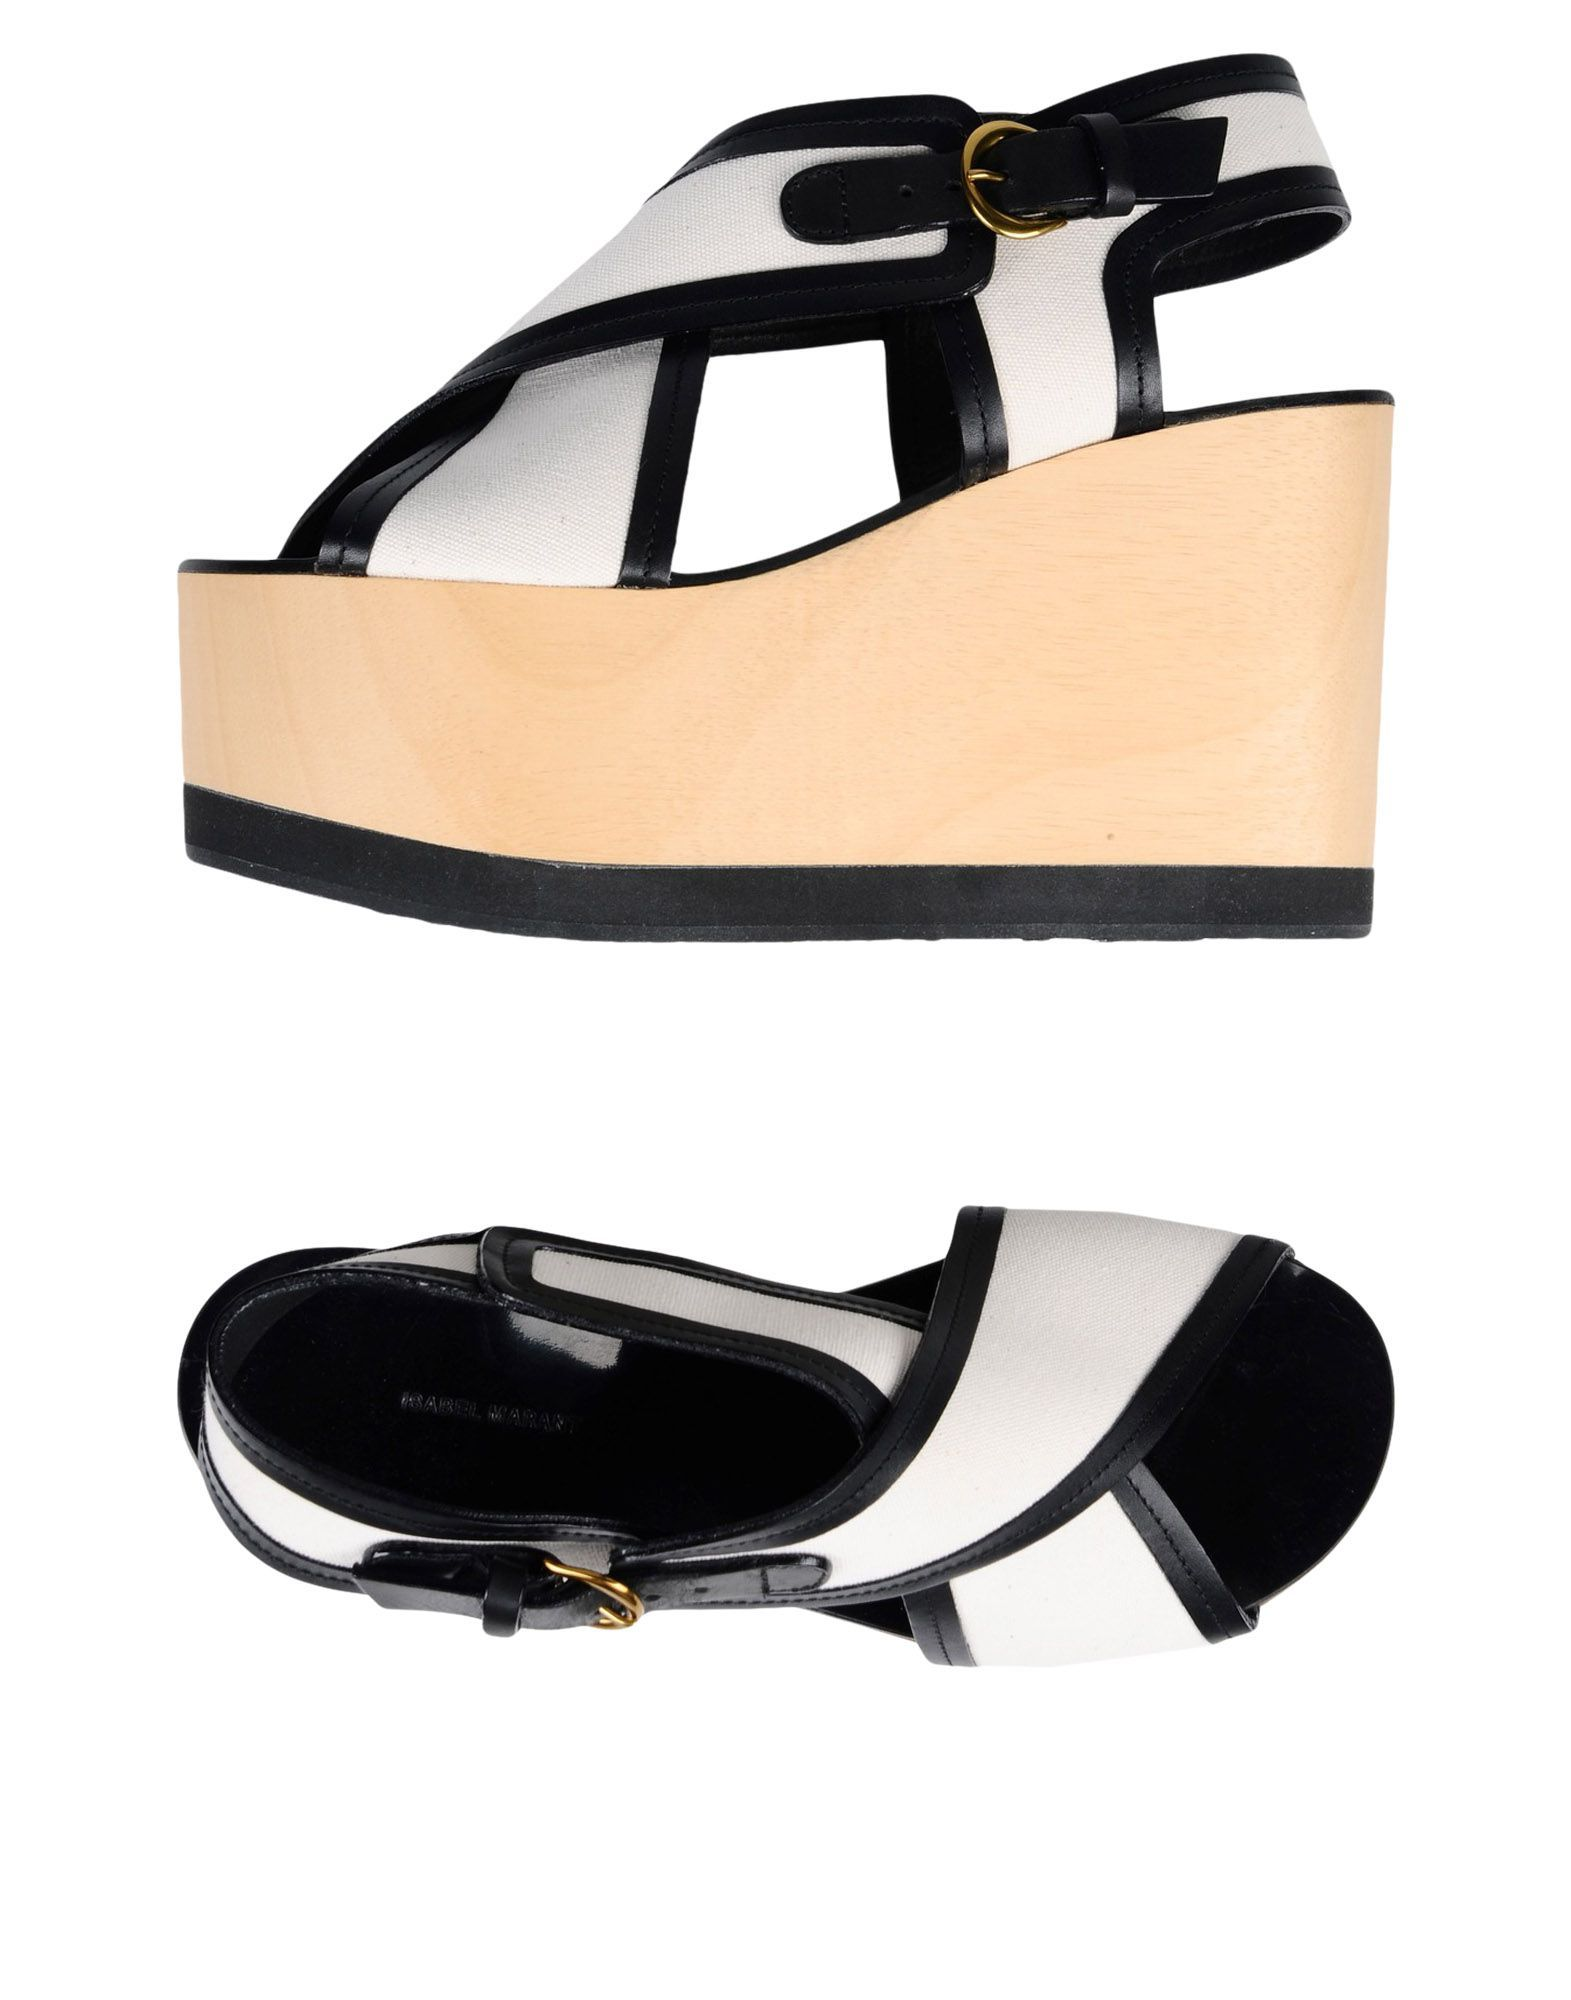 Isabel Marant Sandals In White